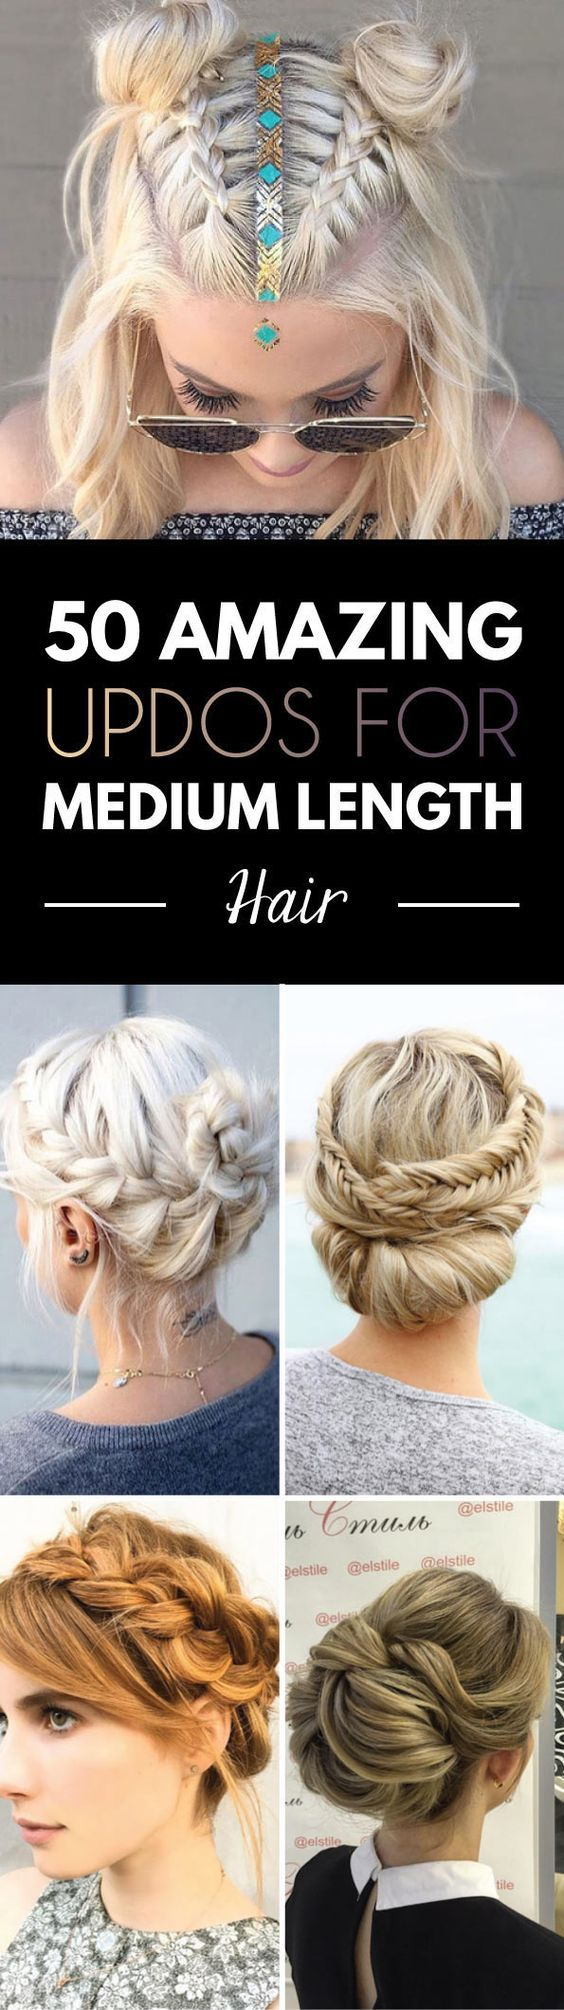 Share Tweet Pin Mail Deconstructed fishtail updo. (Letitia Booth) Low braided updo. (Lorena) Knotted top bun. (Cococha) Chic french twist. (Show Beauty) Laced braid ...: